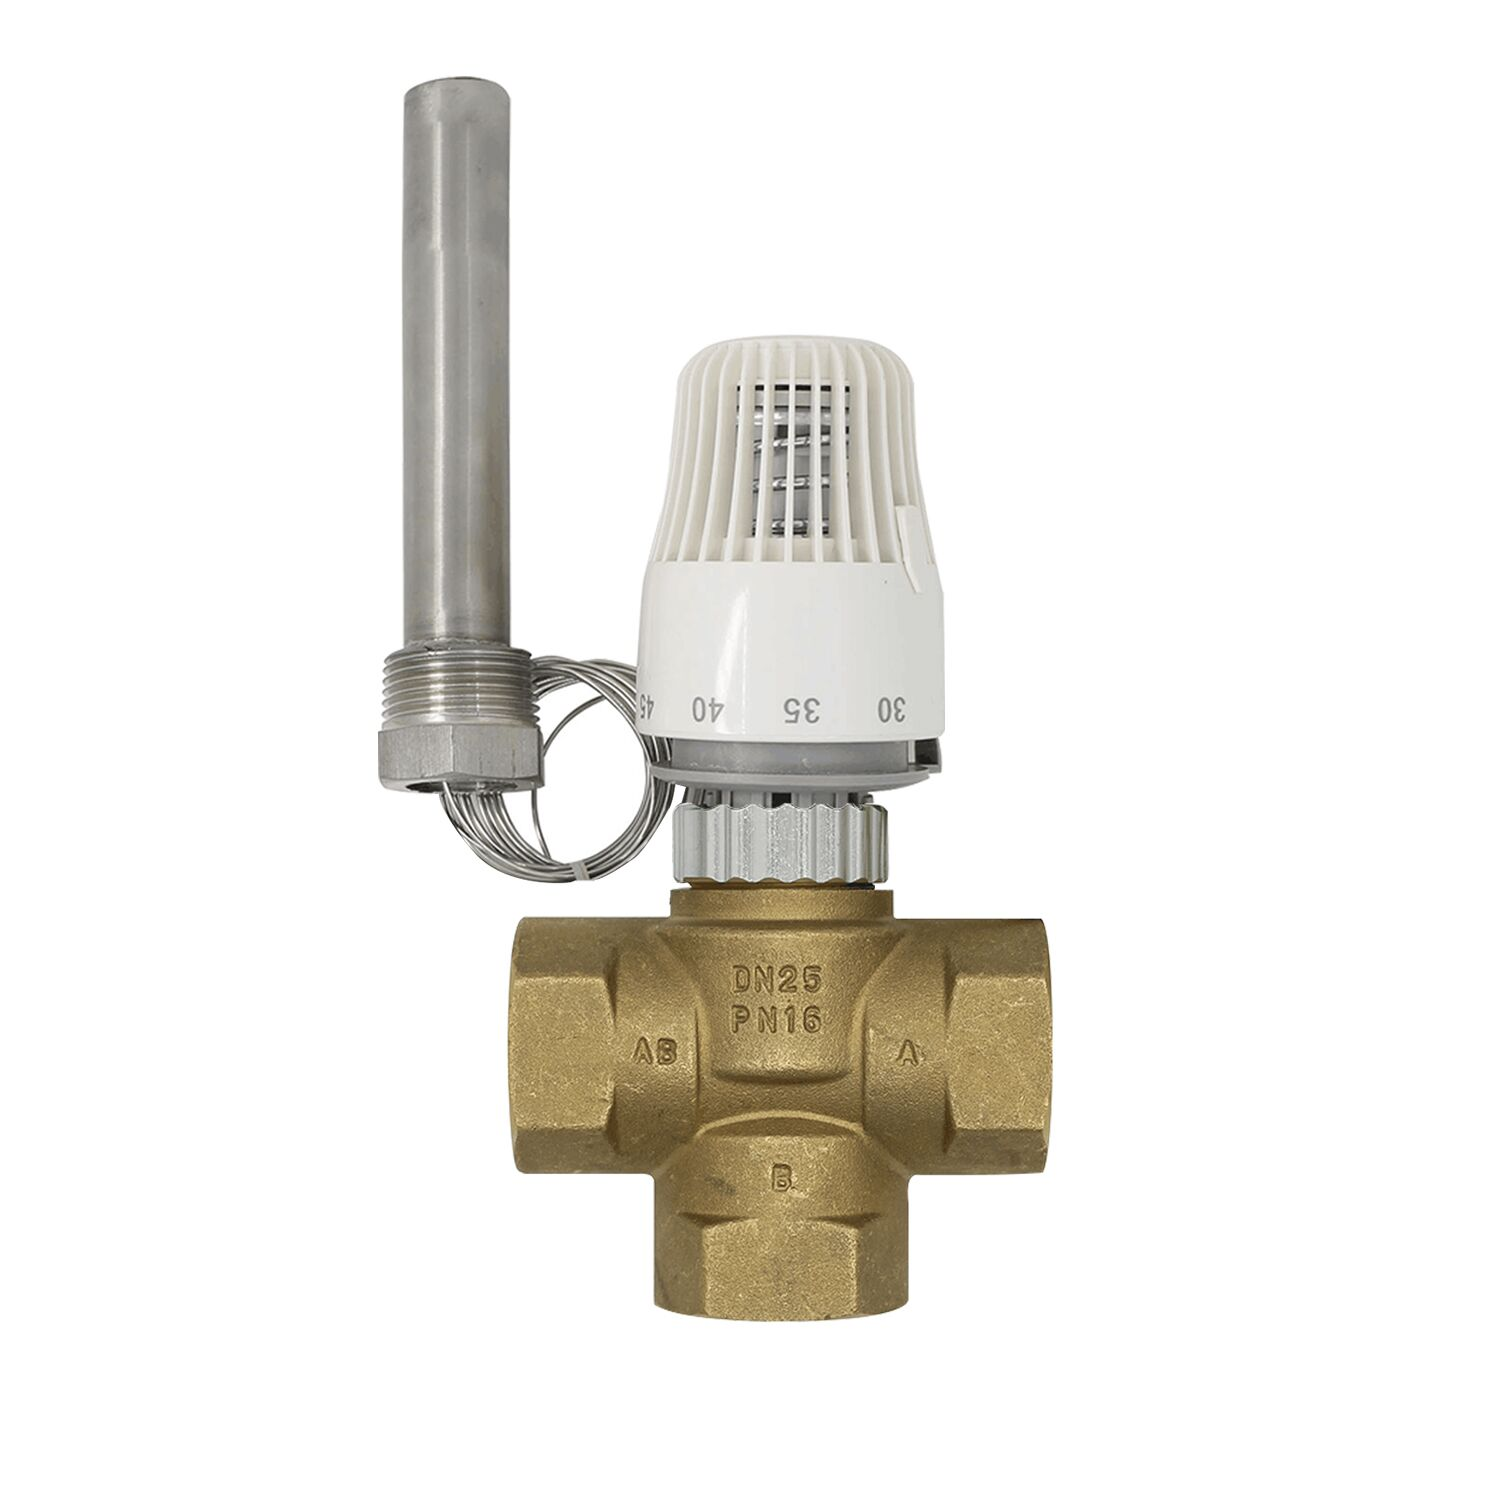 30-70 Degree Control Floor Heating System Thermostatic Radiator Valve M30*1.5 Three Way Valve Thermowell  DN25